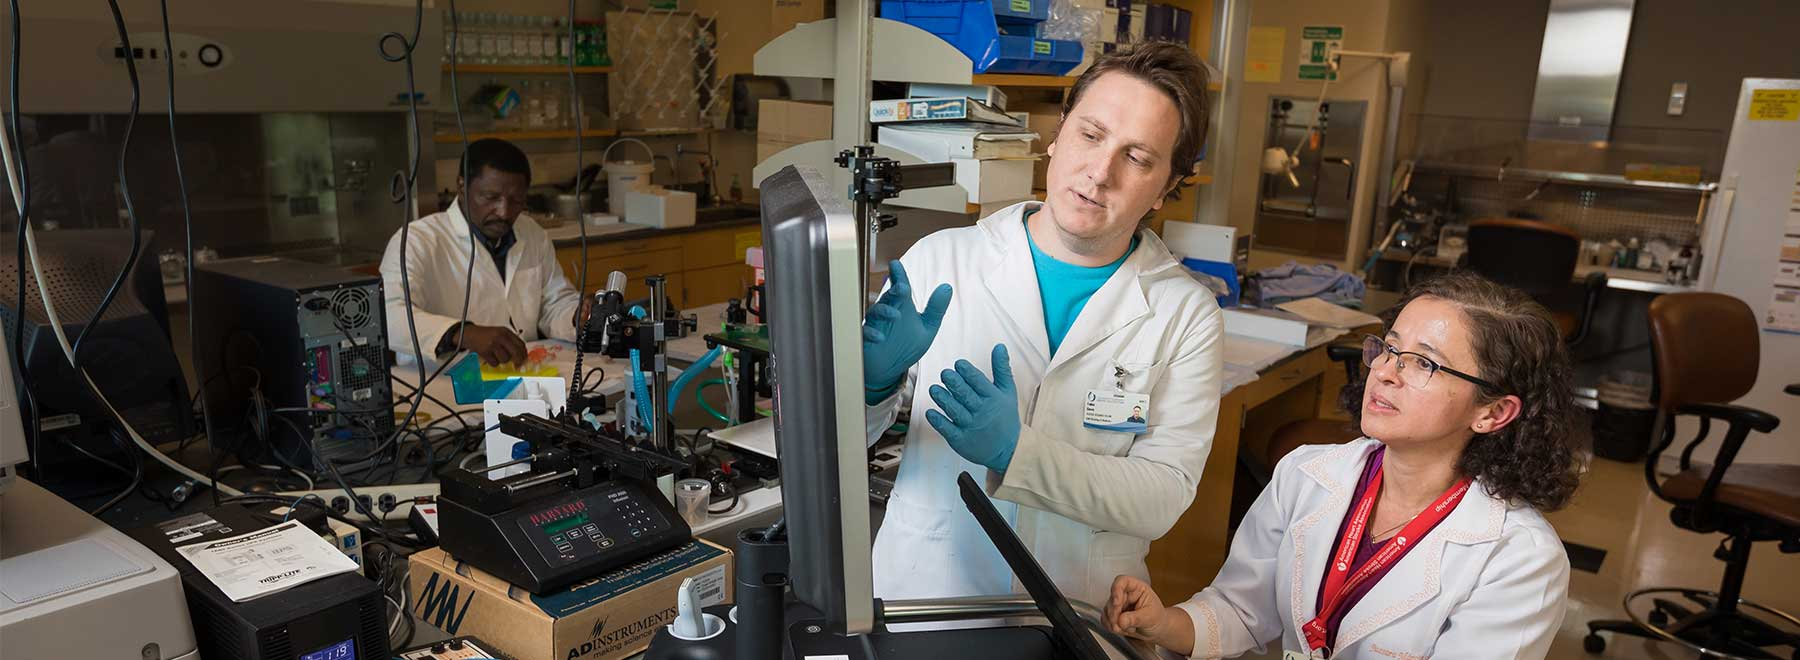 Two researchers work with scientific equipment